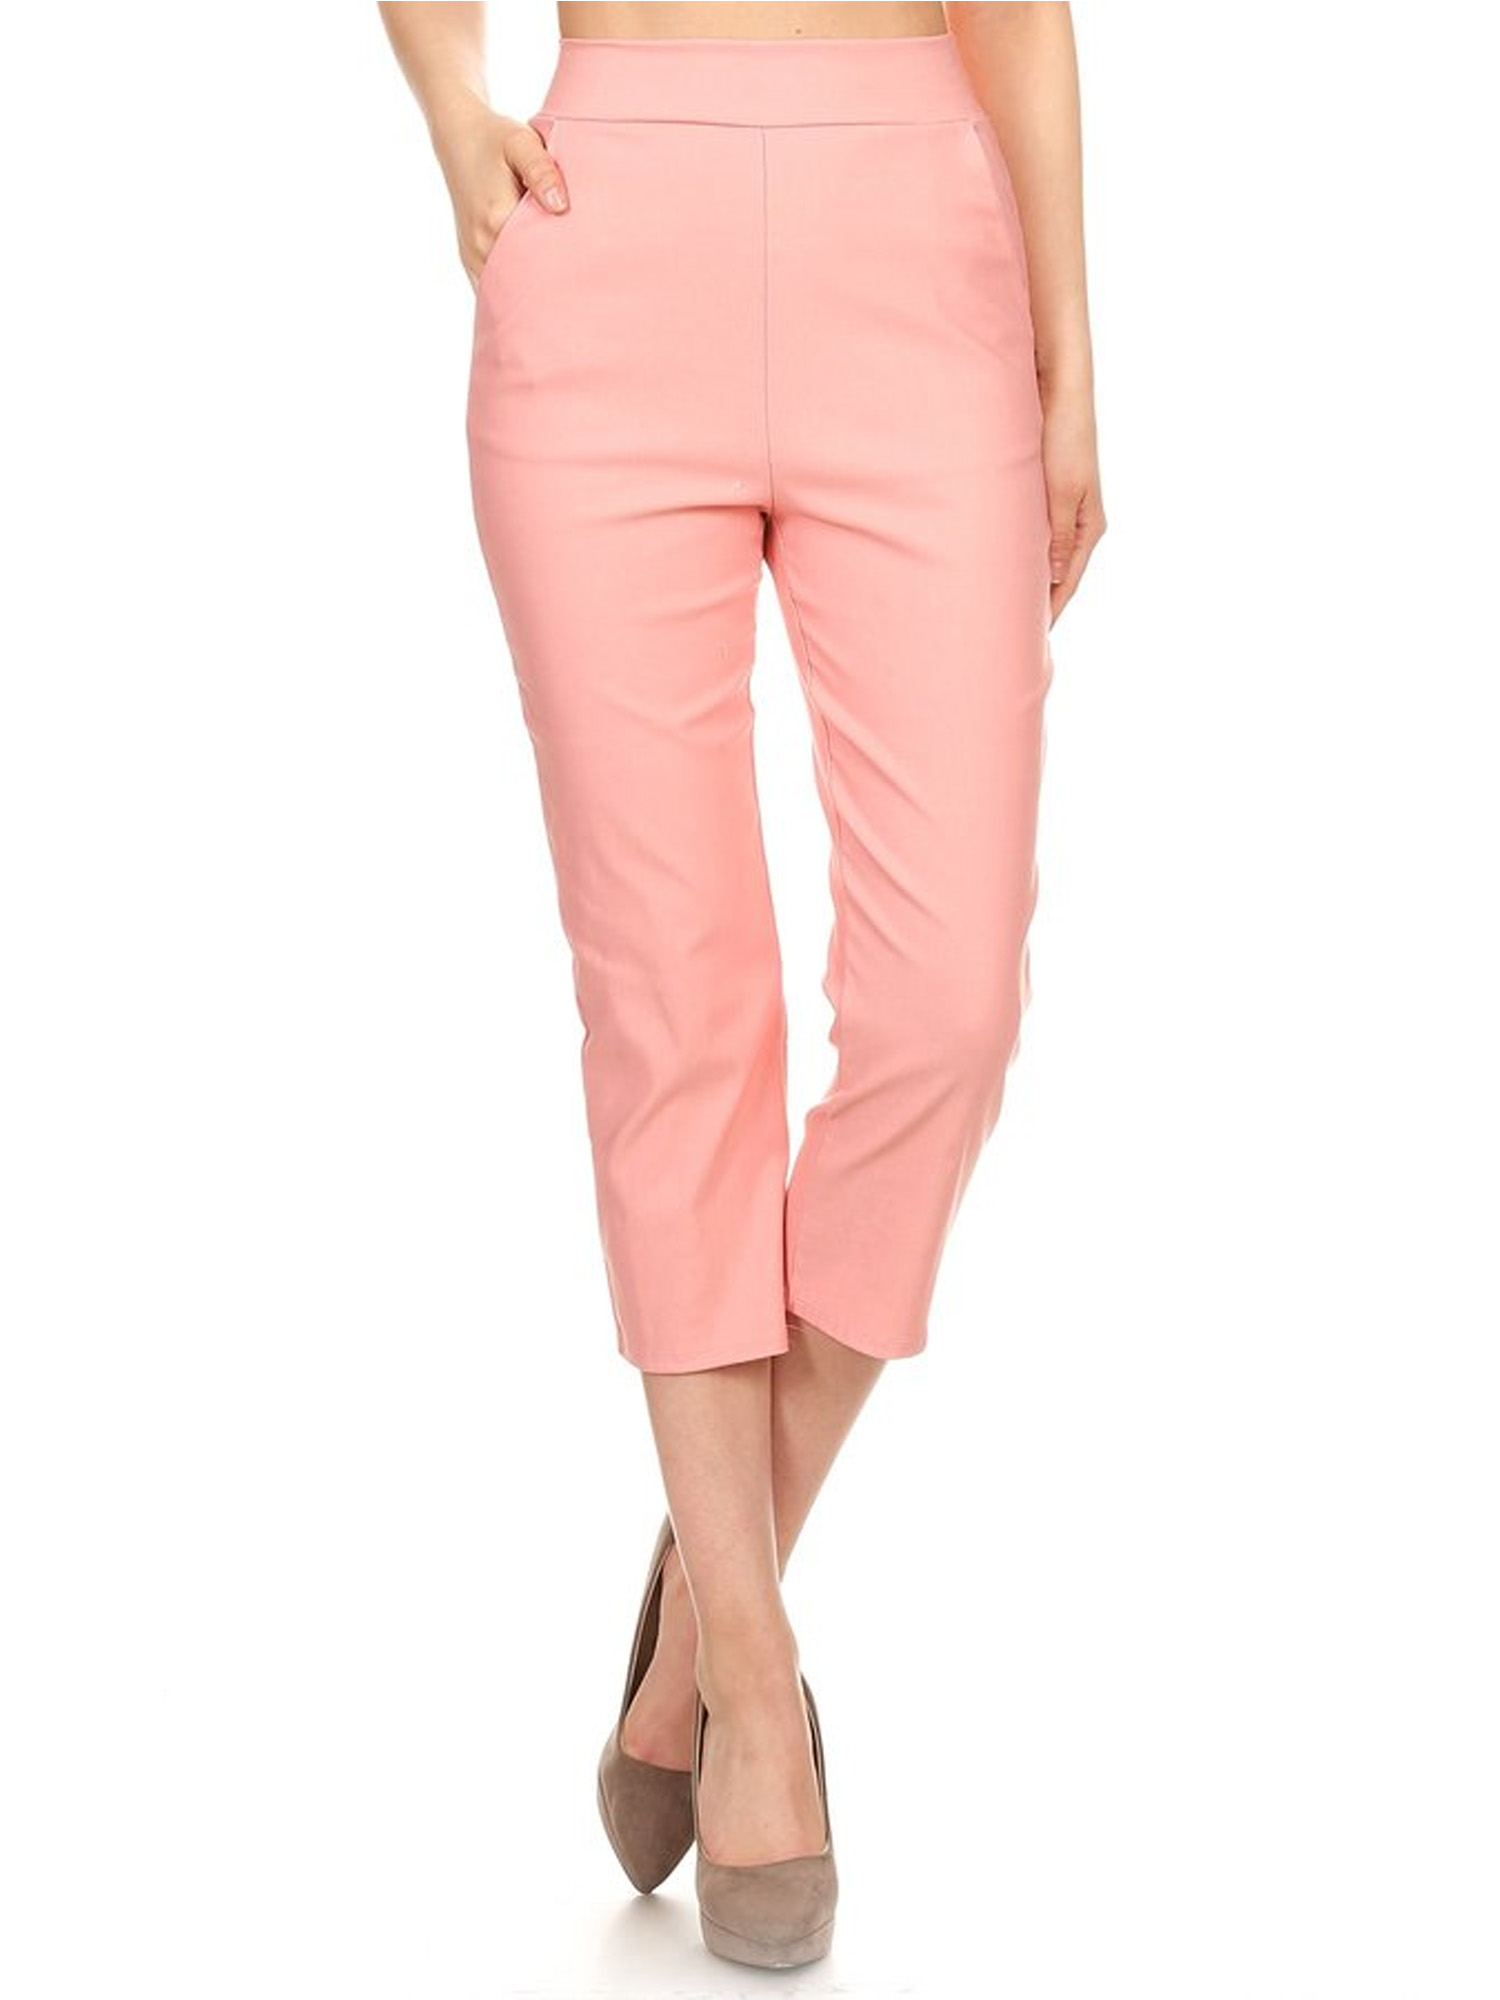 NEW MOA COLLECTION Women's Solid/Printed Basic Slim Fitted Capri Formal Casual Pants / Made in USA